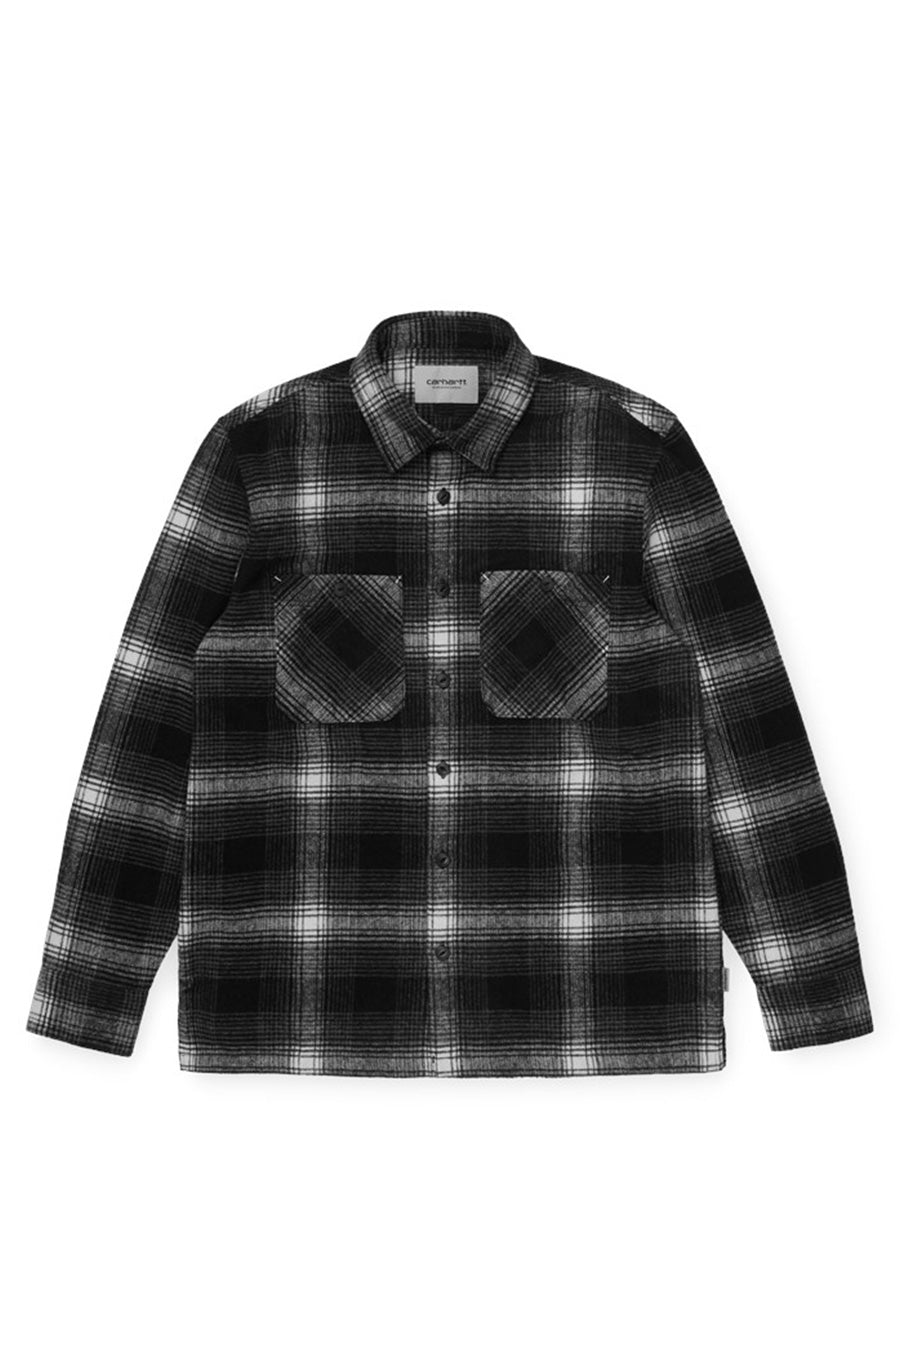 Carhartt WIP - Black Nigel Check Shirt | 1032 SPACE